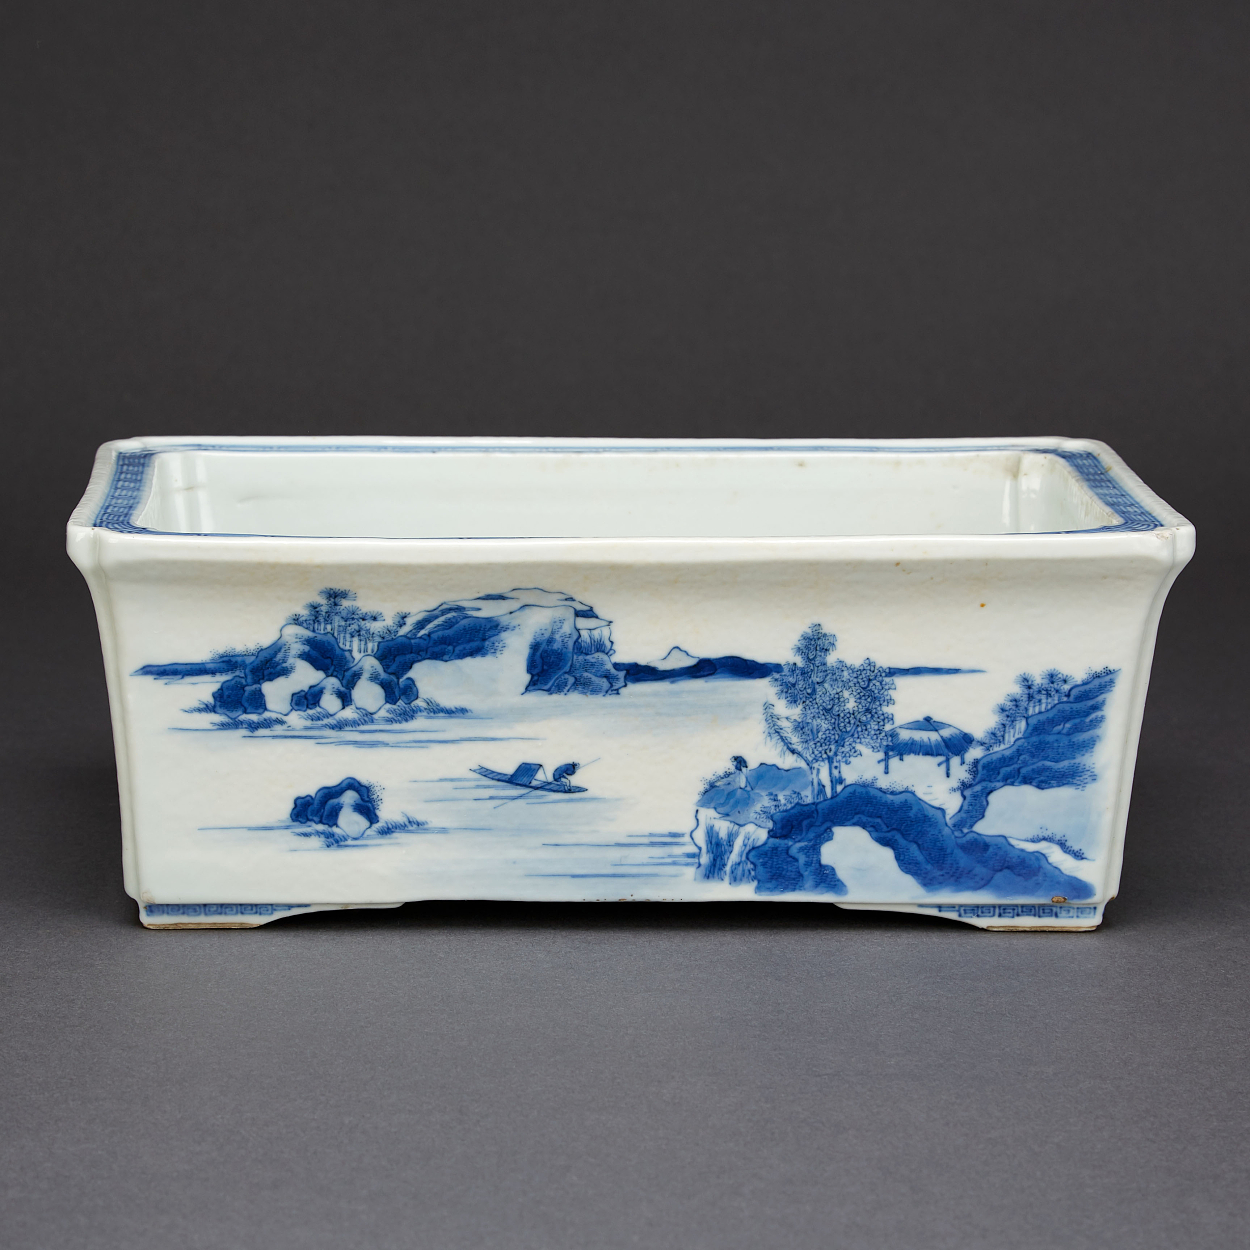 A Rectangular Blue and White Jardiniere